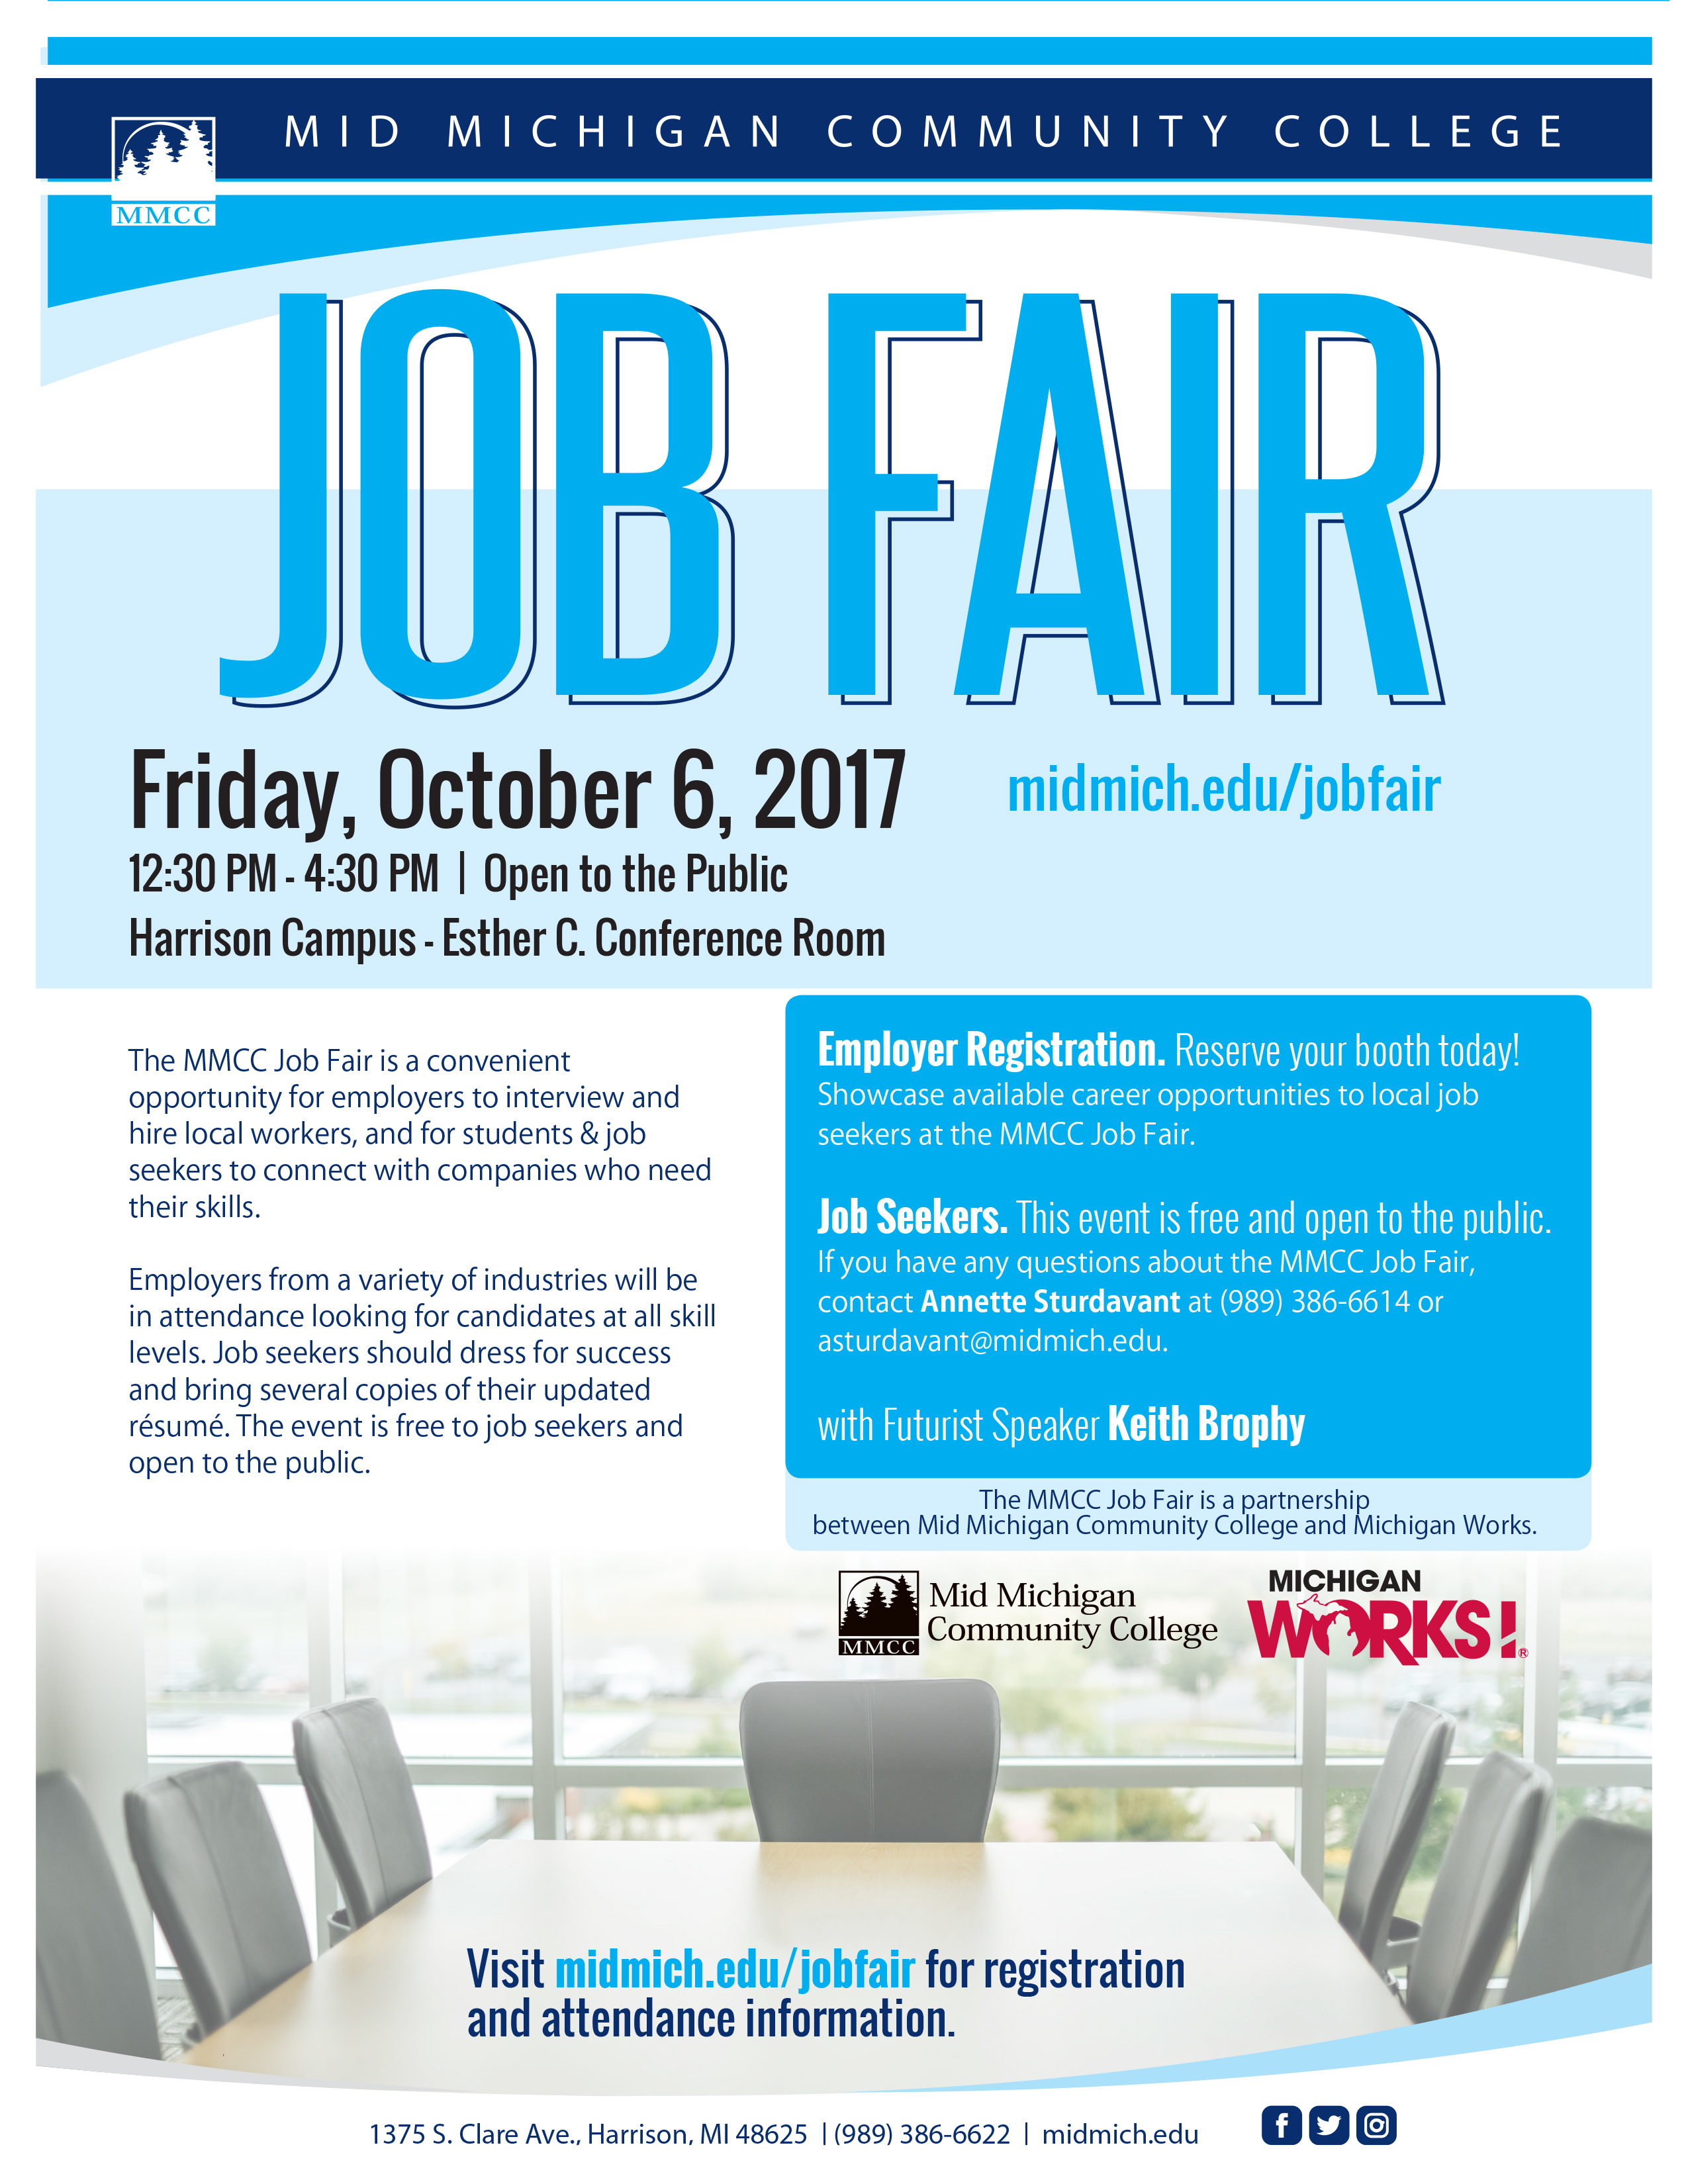 For More Information About MMCCu0027s Job Fair, Visit Midmich.edu/jobfair Or  Contact Annette Sturdavant At Asturdavant@midmich.edu Or (989) 386 6614.  Michigan Works Resume